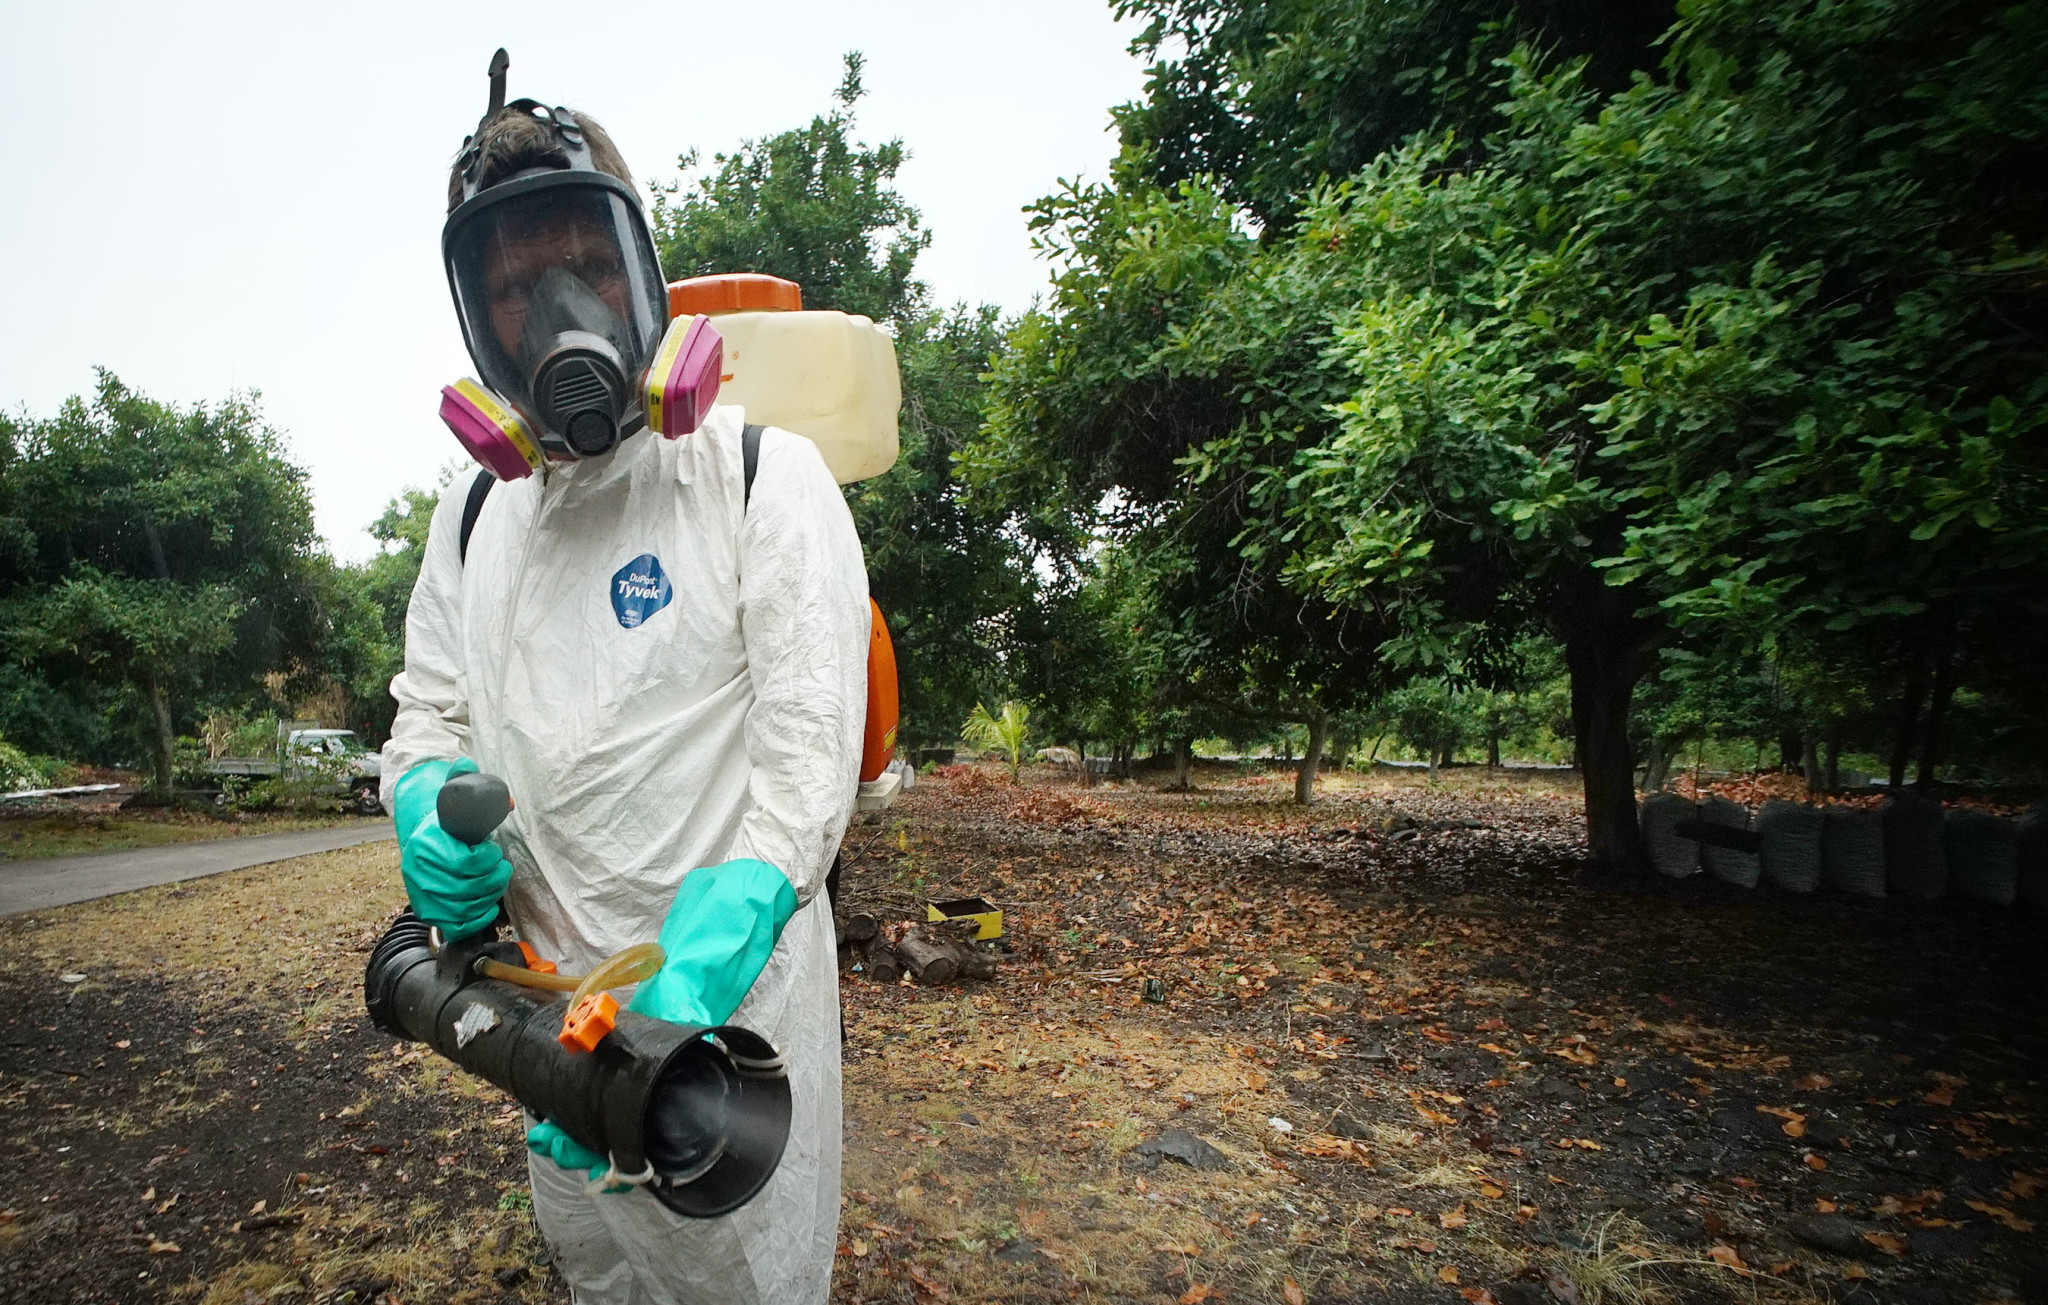 <p>Feb. 18: Big Island resident Bill Cullum uses a gas-powered sprayer to combat mosquitoes during a dengue fever outbreak. <em>Cory Lum/Civil Beat</em></p>